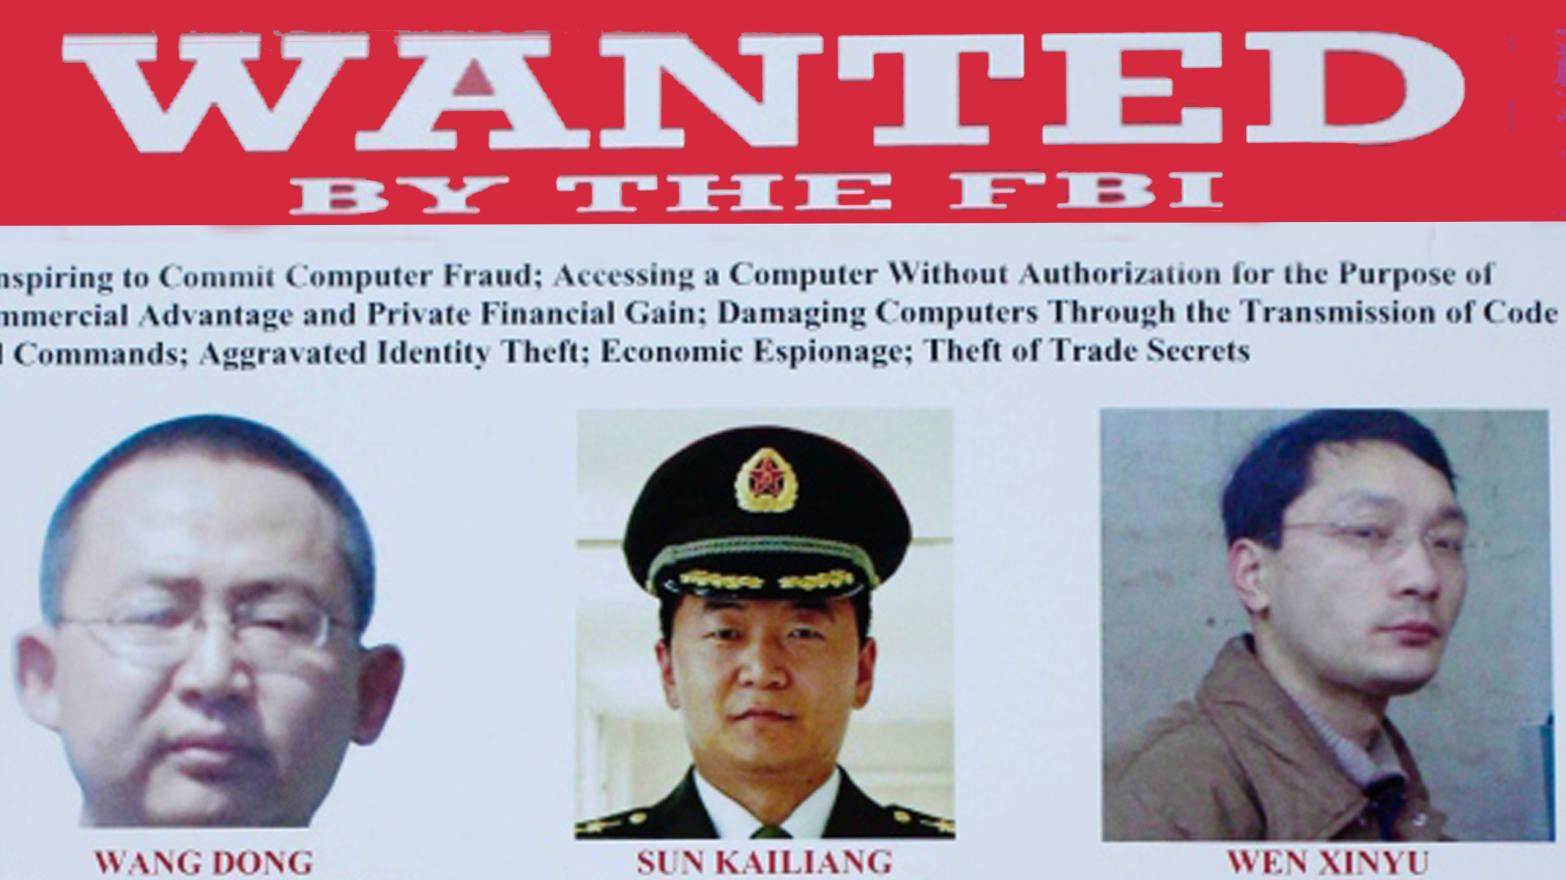 #ShotsFired in U.S.-China Cyberwar